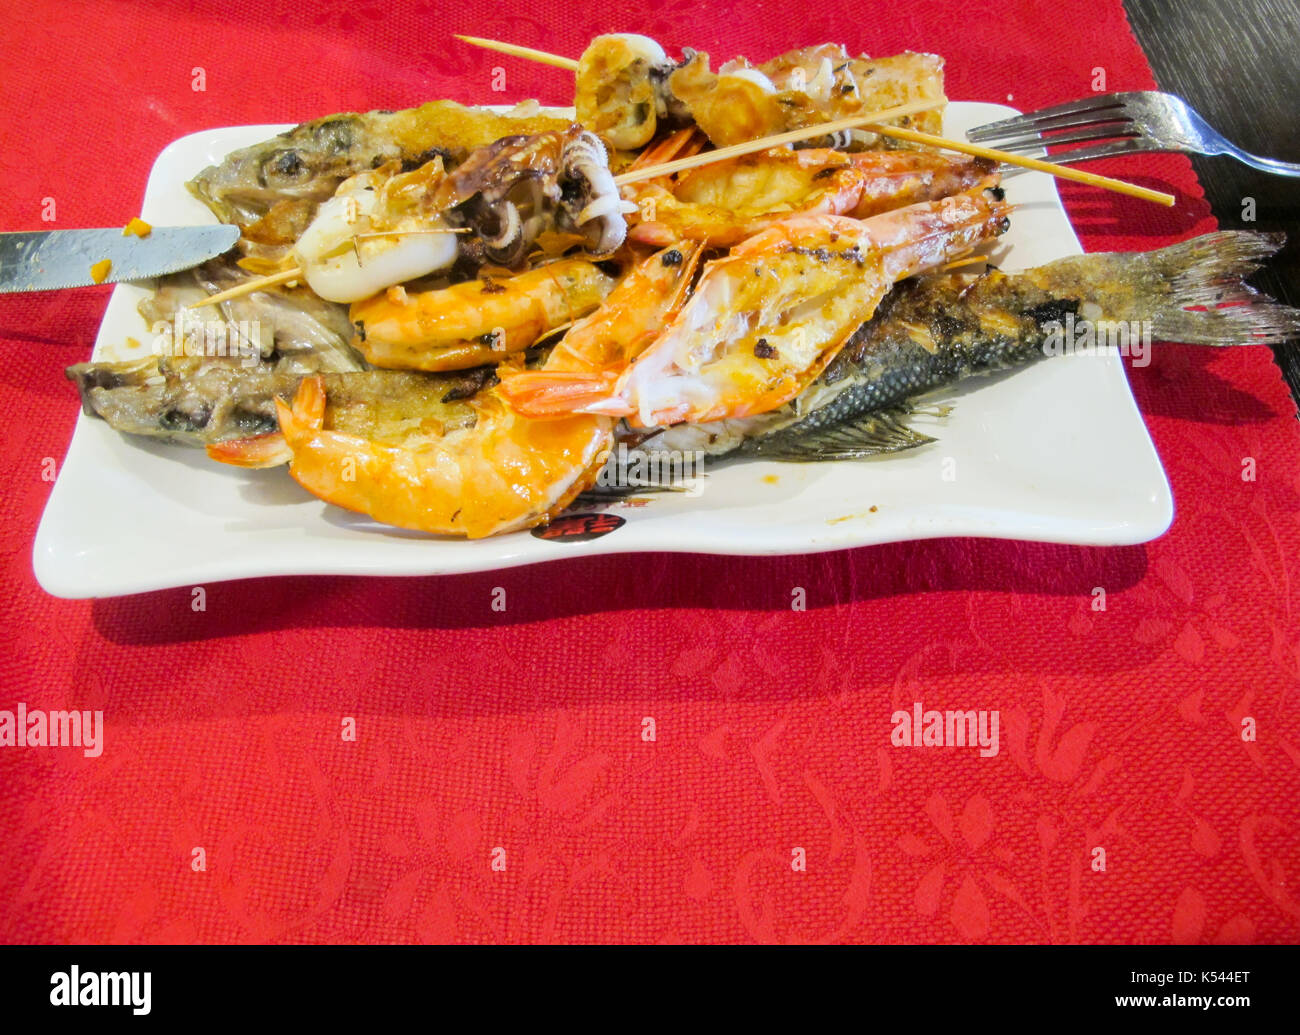 Seafood buffet stock photos seafood buffet stock images for All you can eat fish